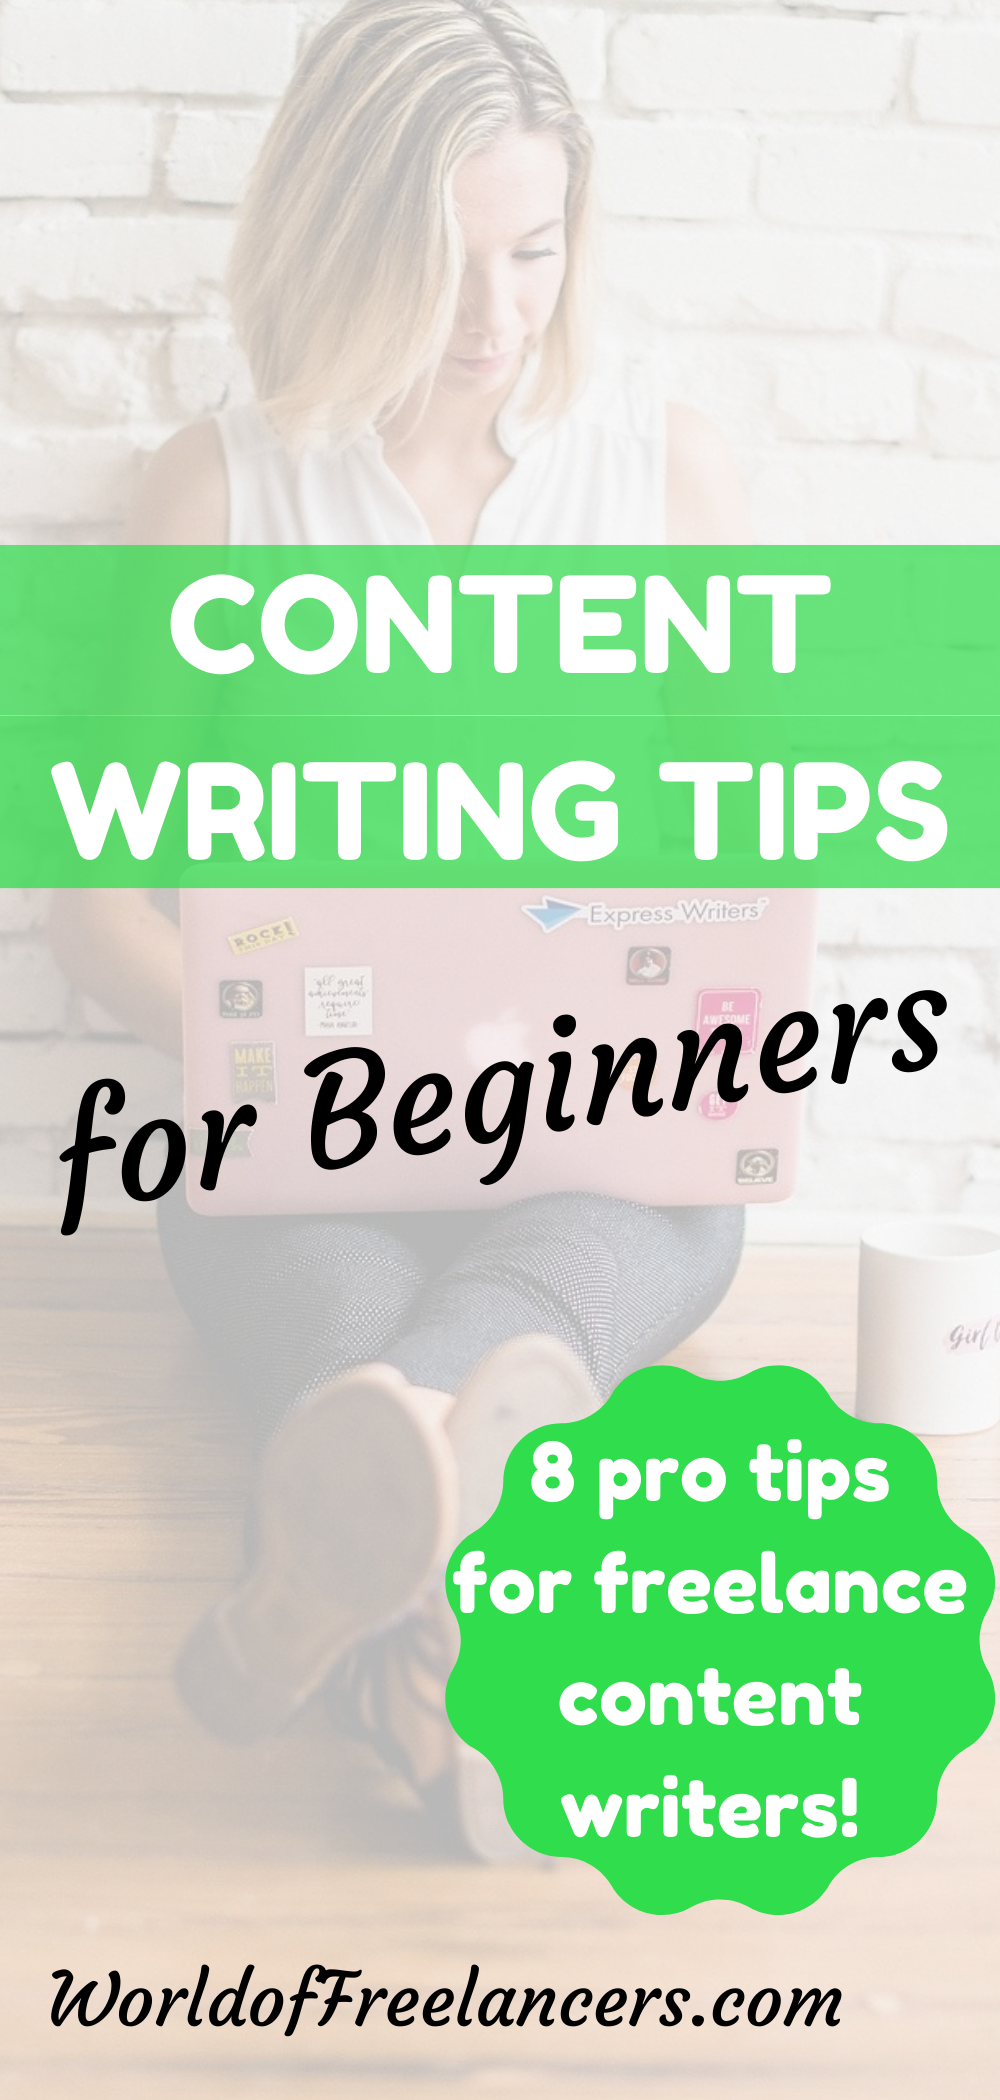 Content writing tips for beginners - 8 pro tips for freelance content writers text overlay with image of woman writing on laptop on floor